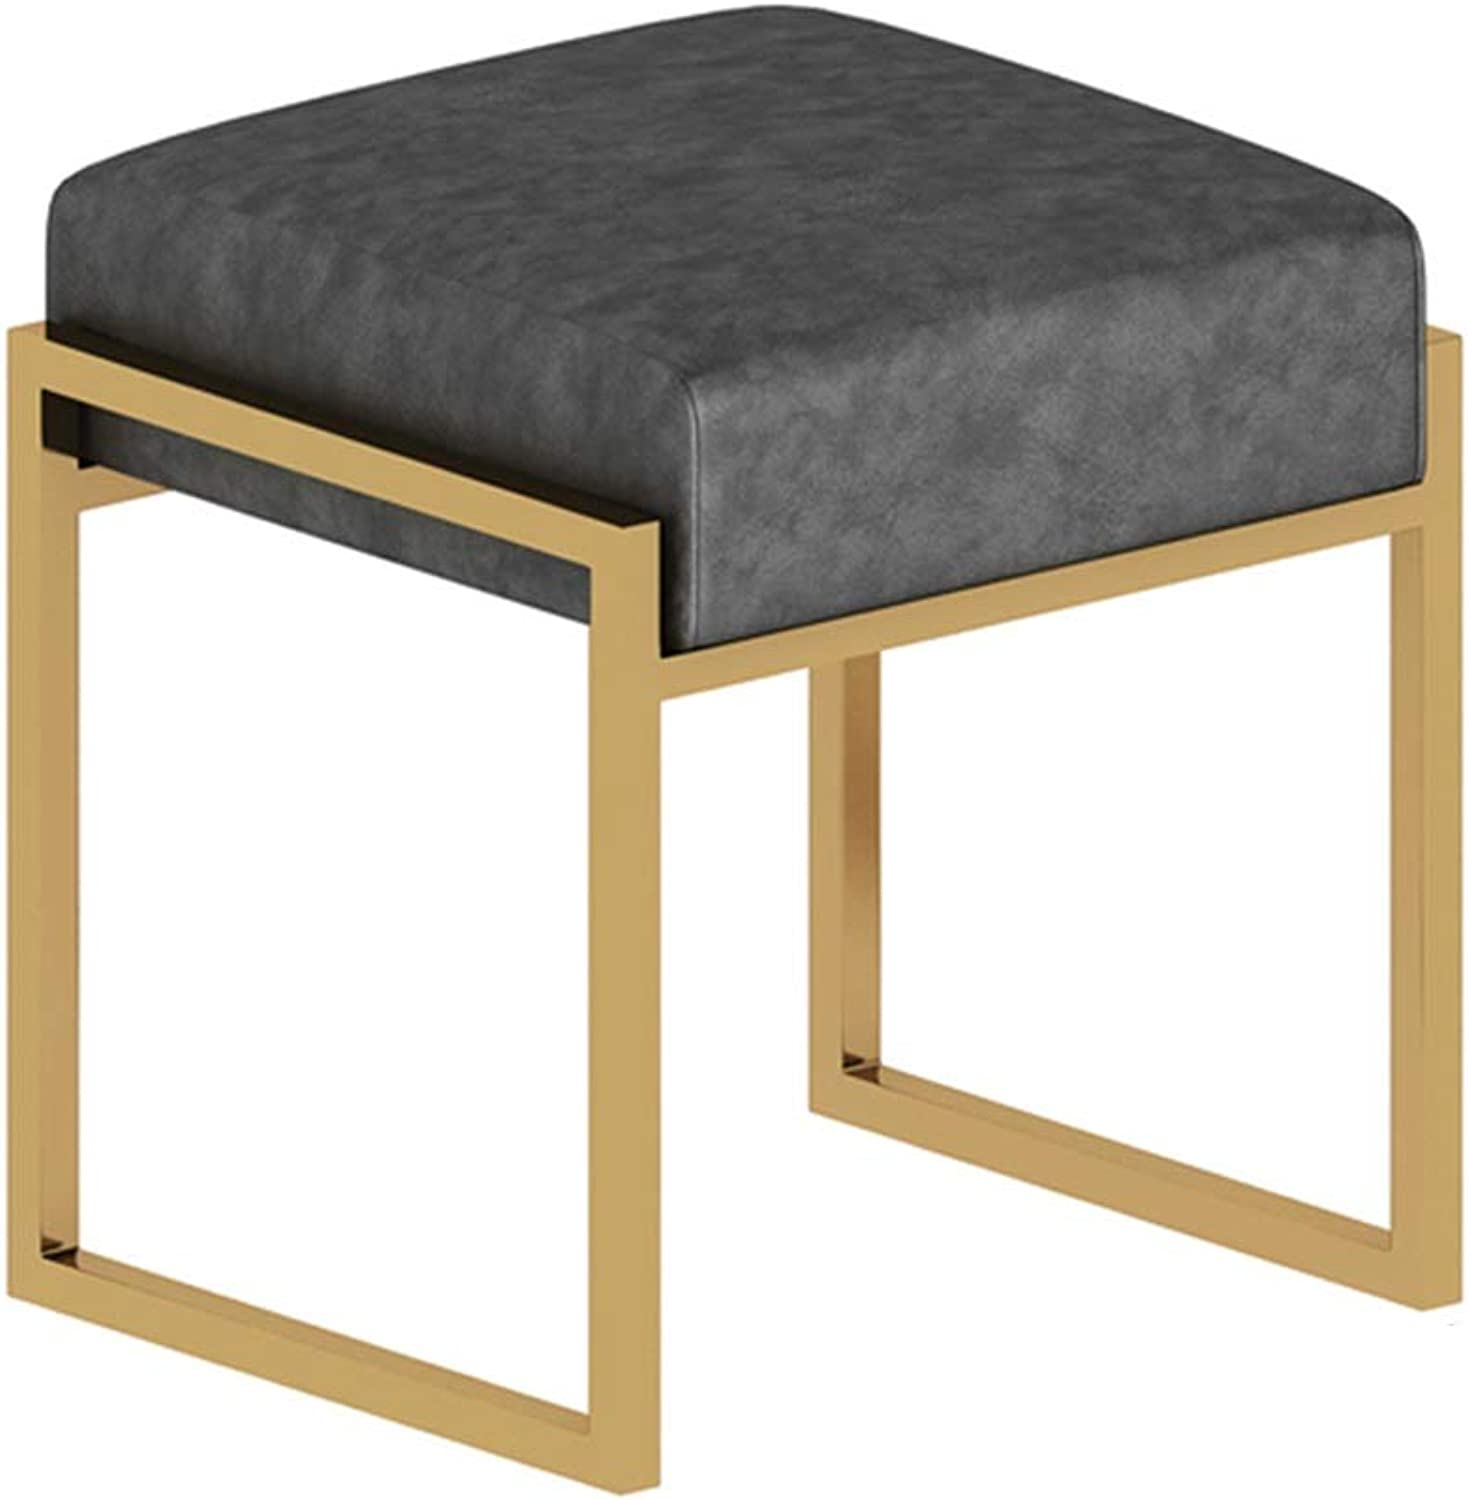 Makeup Chair Vanity Stool Change shoes Stool Tea Table Porch Stool Makeup Stool Footstool Bedroom Stool Cloakroom Stool Dining Stool Vanity Stool (color   Black, Size   37x42.5x45cm)